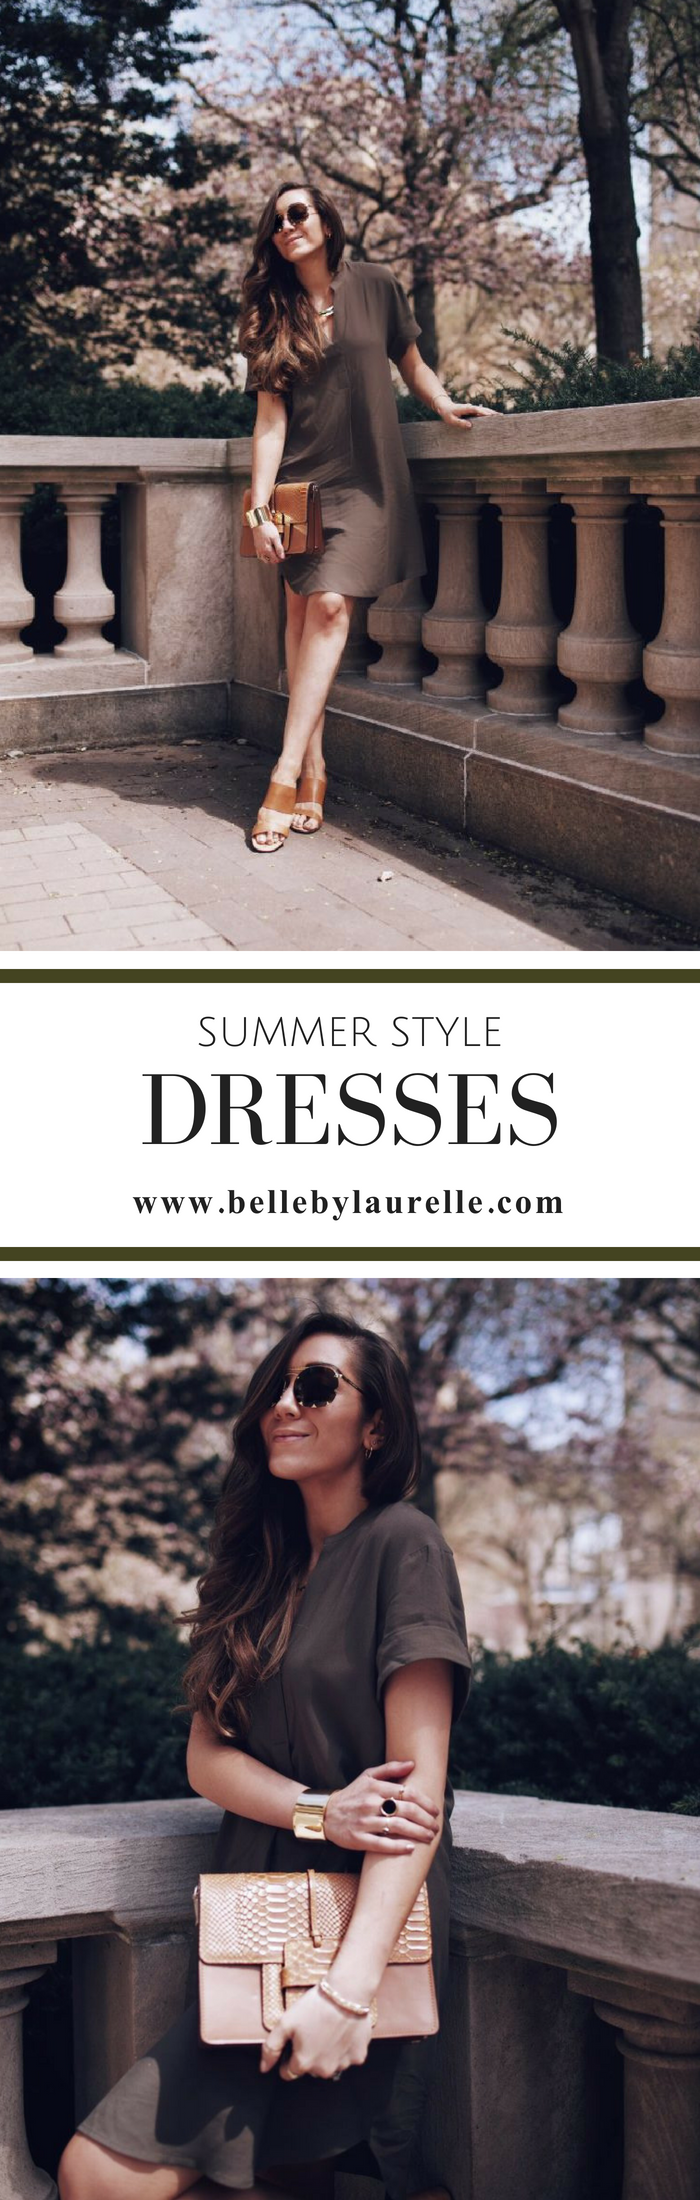 SUMMER STYLE DRESSES Belle by Laurelle